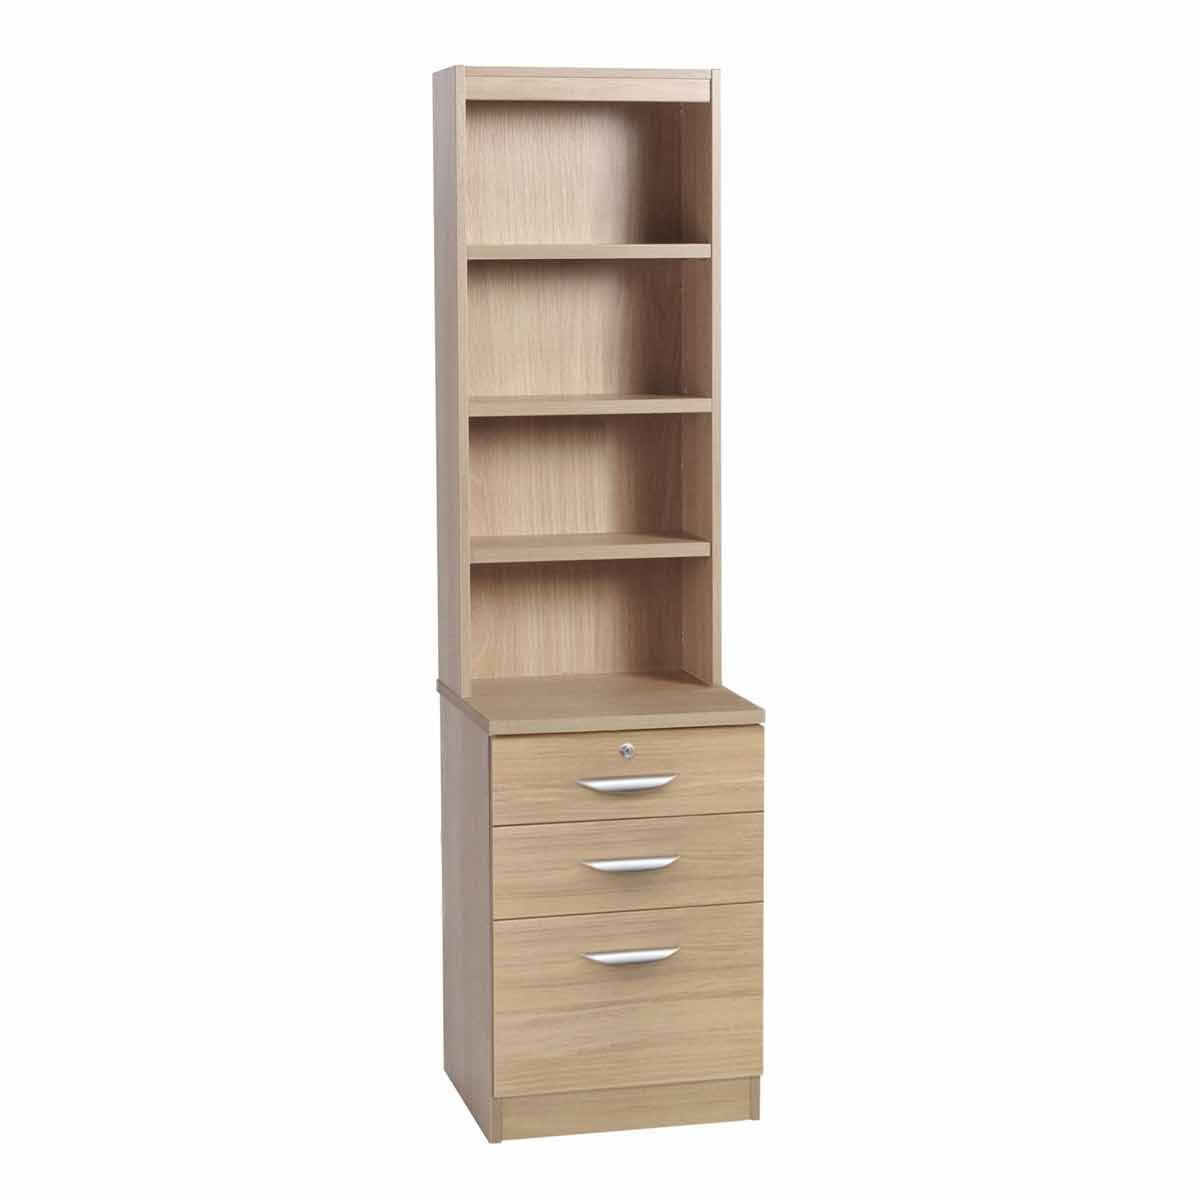 R White 3 Drawer Filing Cabinet with Overshelving Sandstone